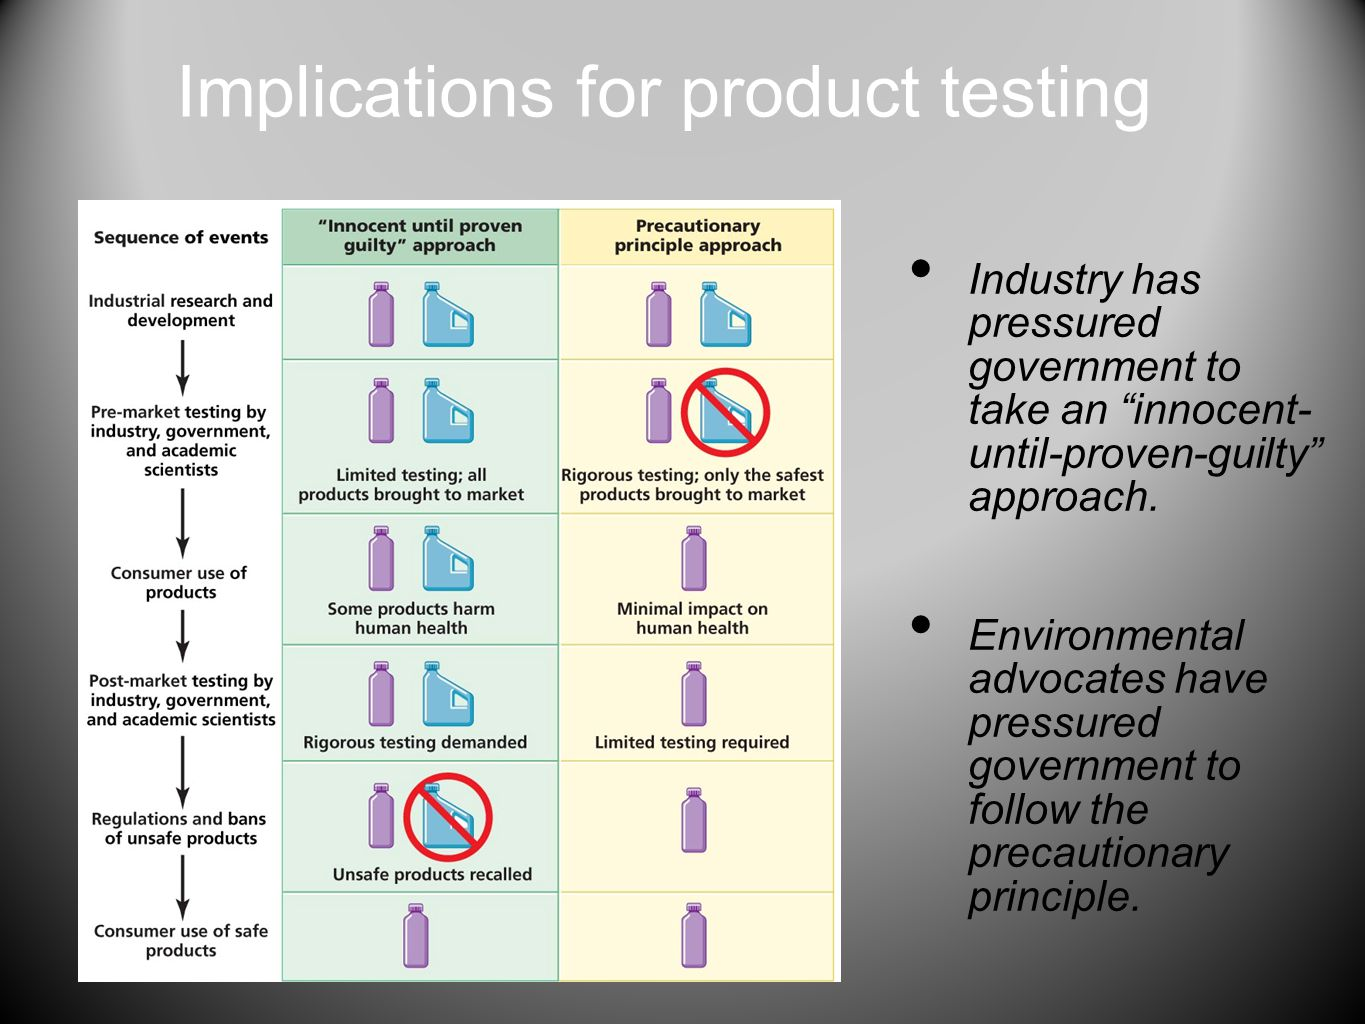 Implications for product testing